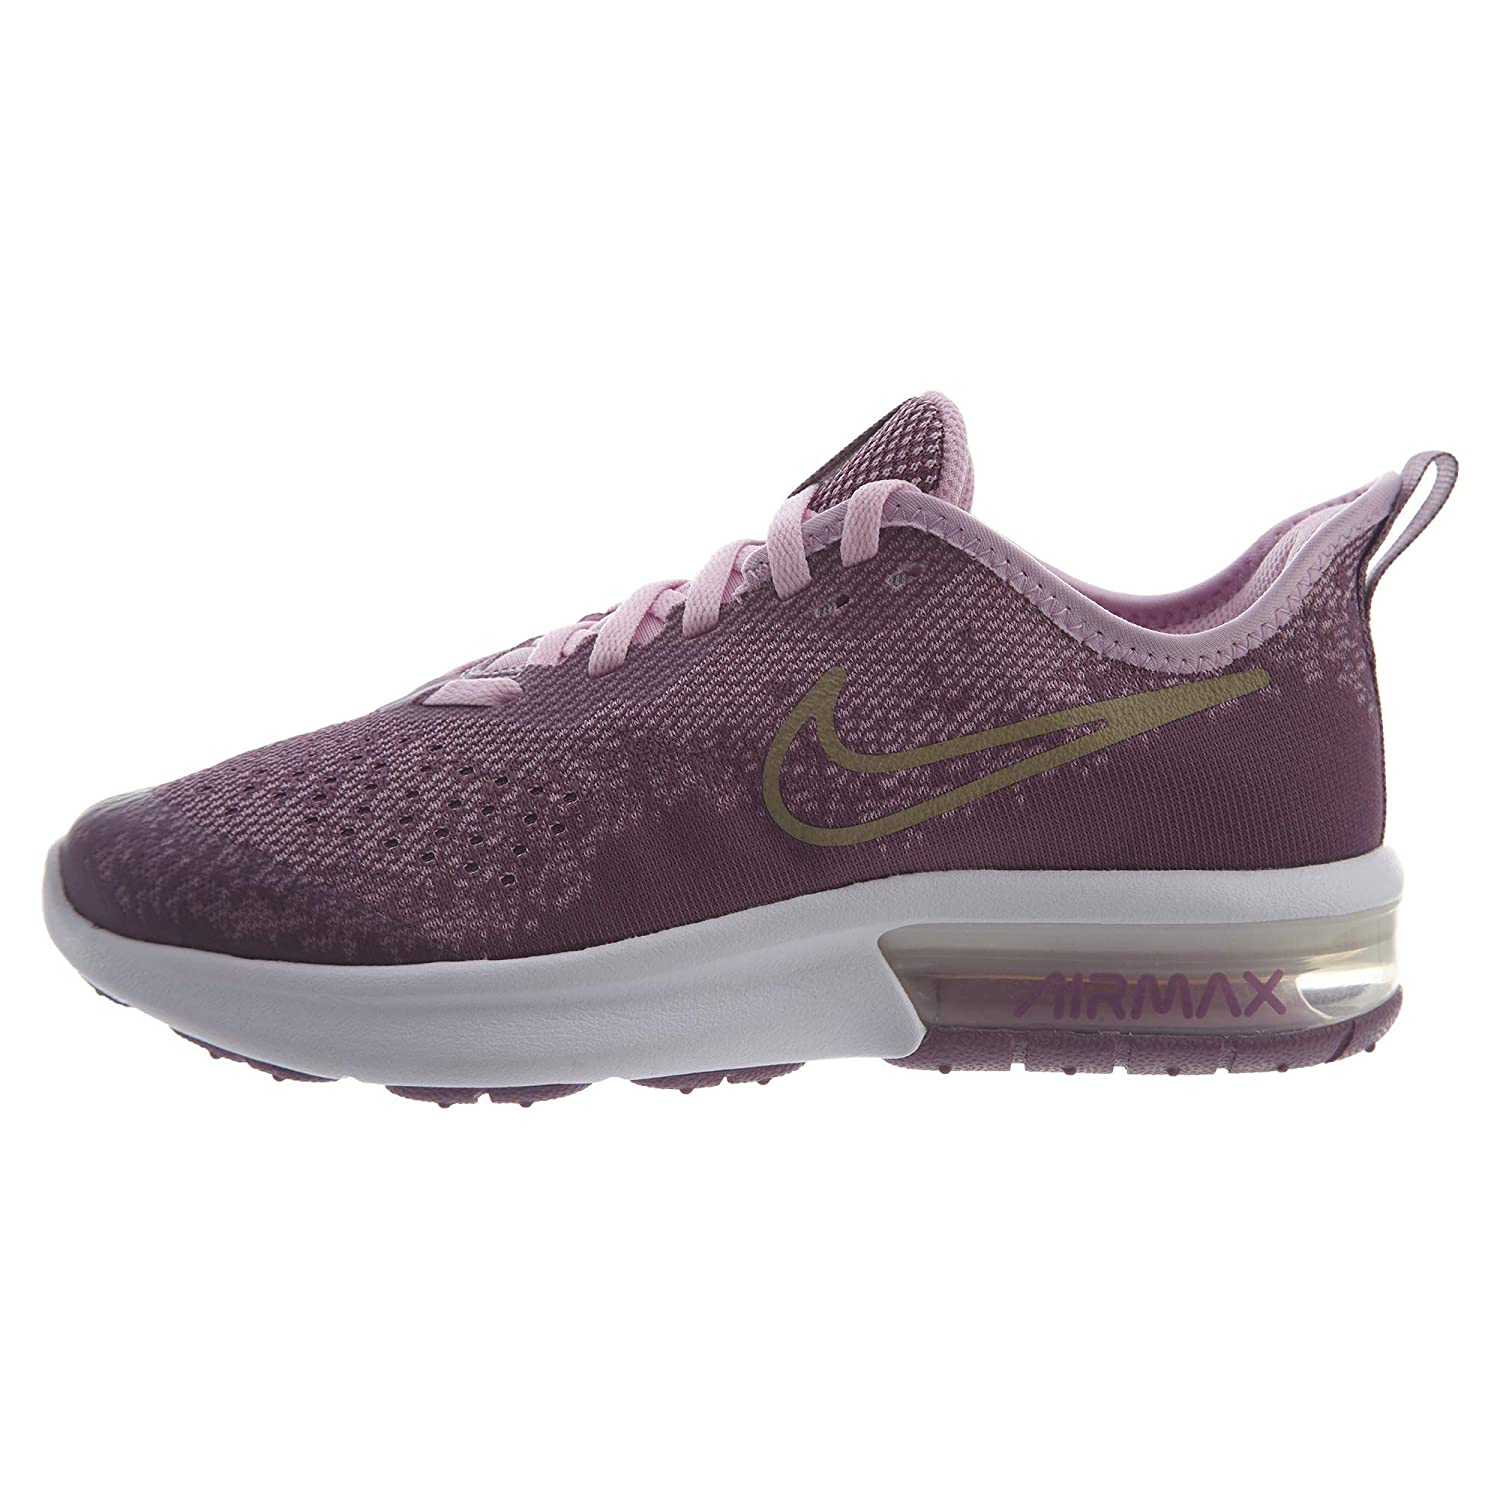 timeless design 296bf a381c Nike Air Max Sequent 4 (GS), Chaussures de Fitness Femme